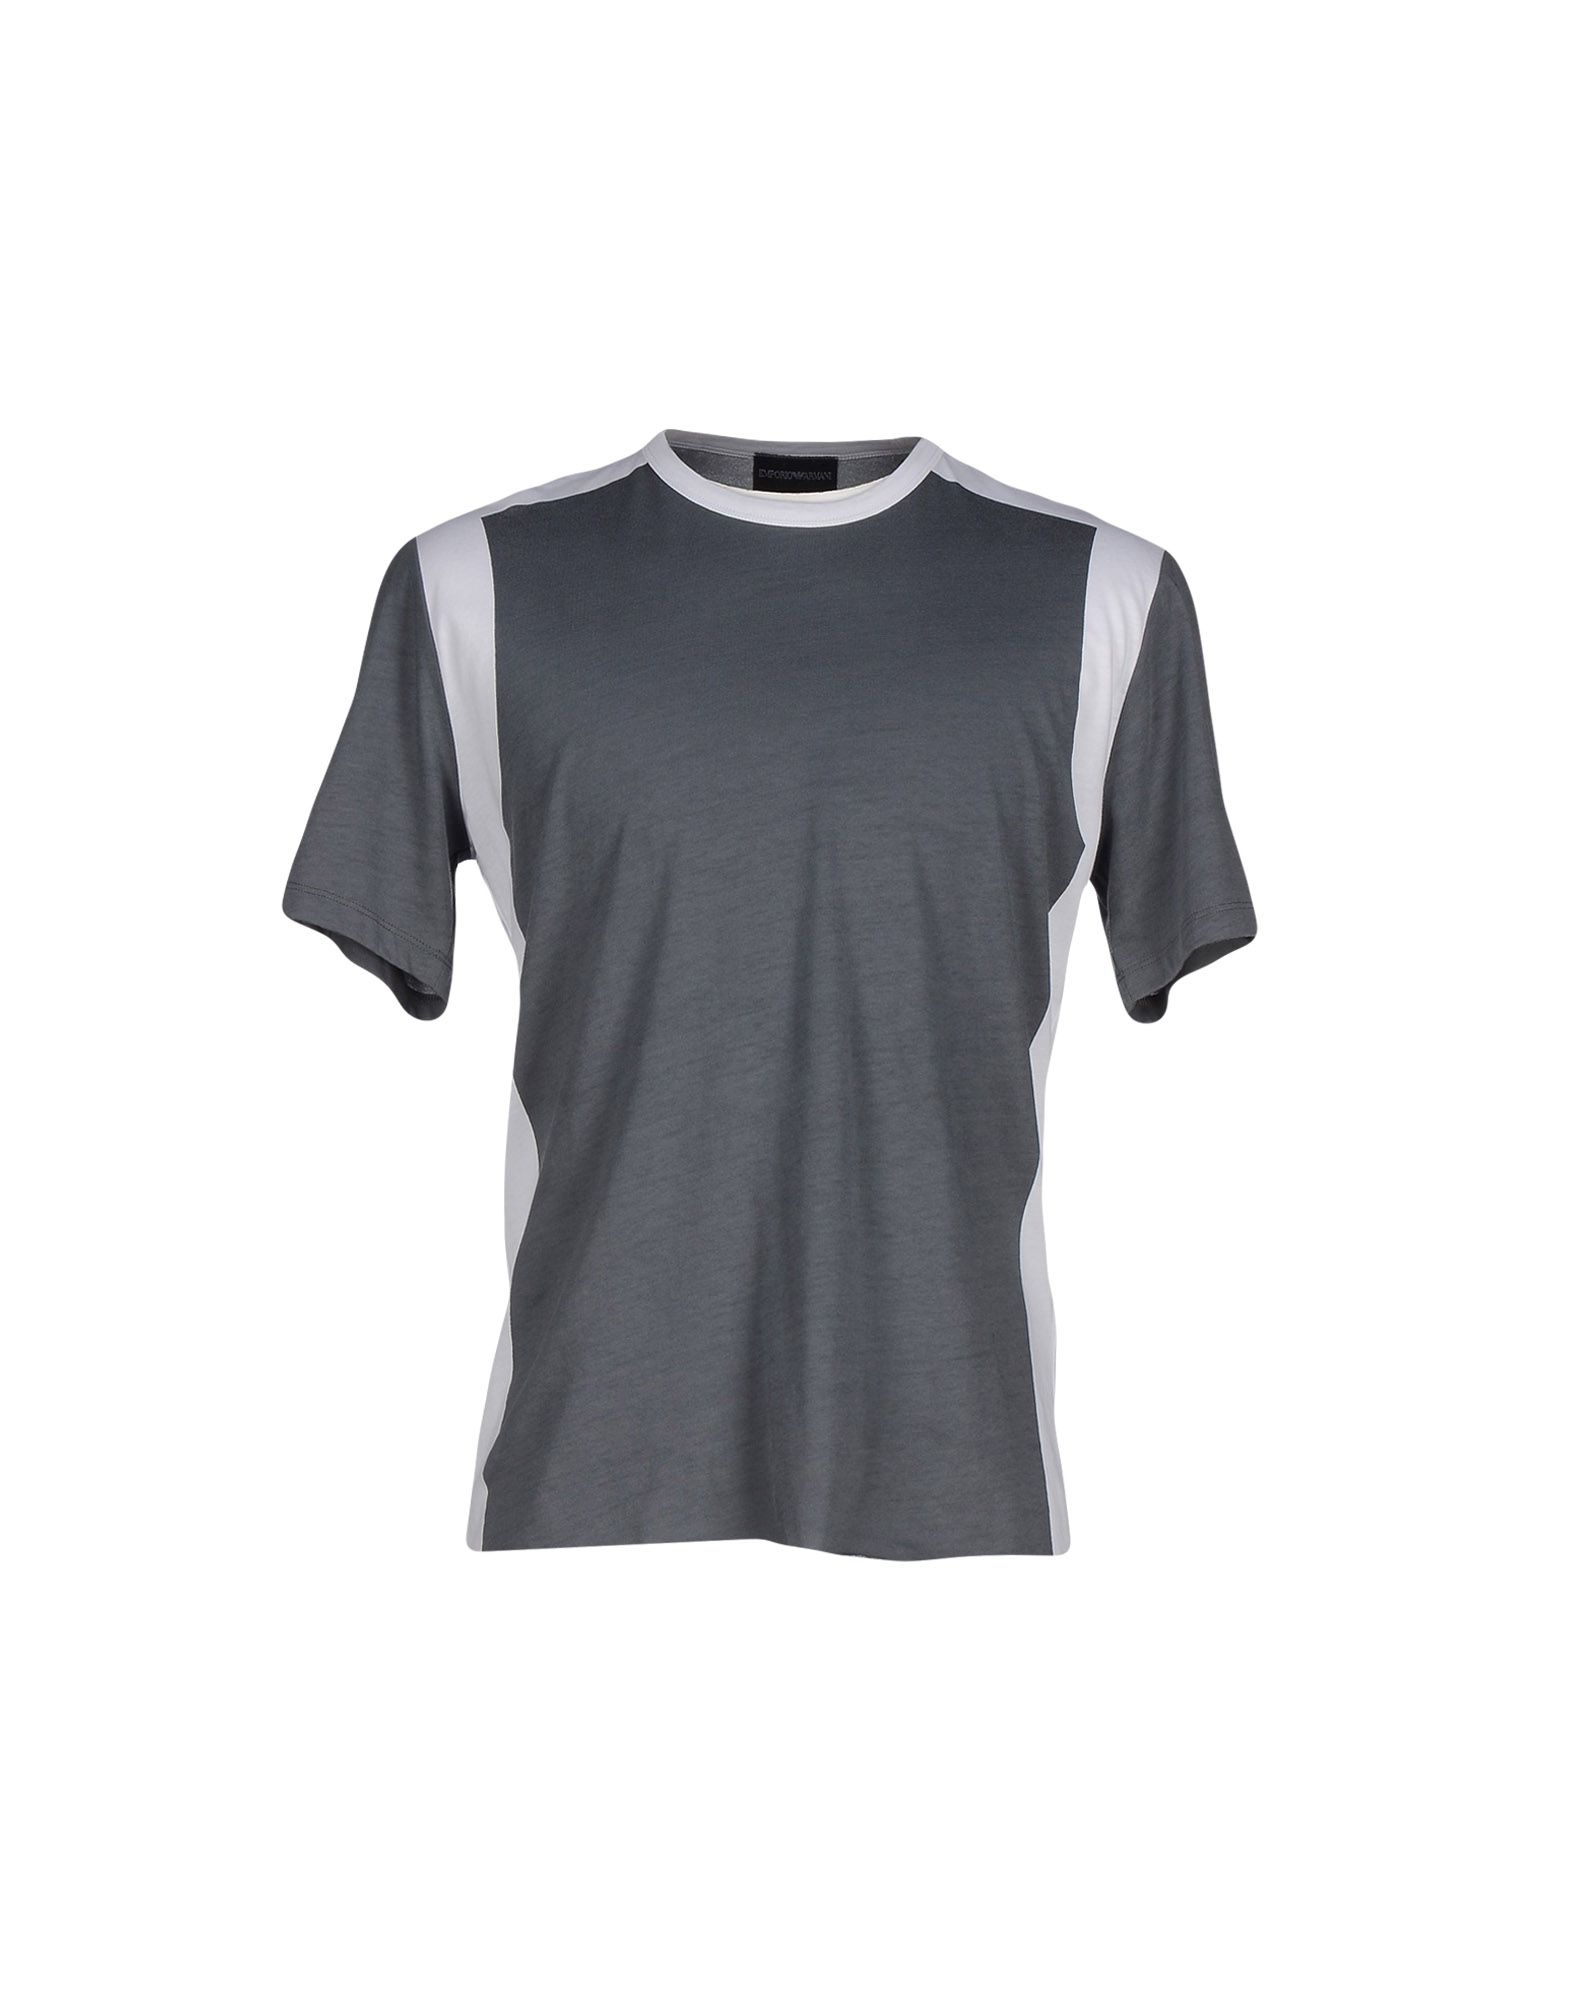 emporio armani t shirt in gray for men lyst. Black Bedroom Furniture Sets. Home Design Ideas